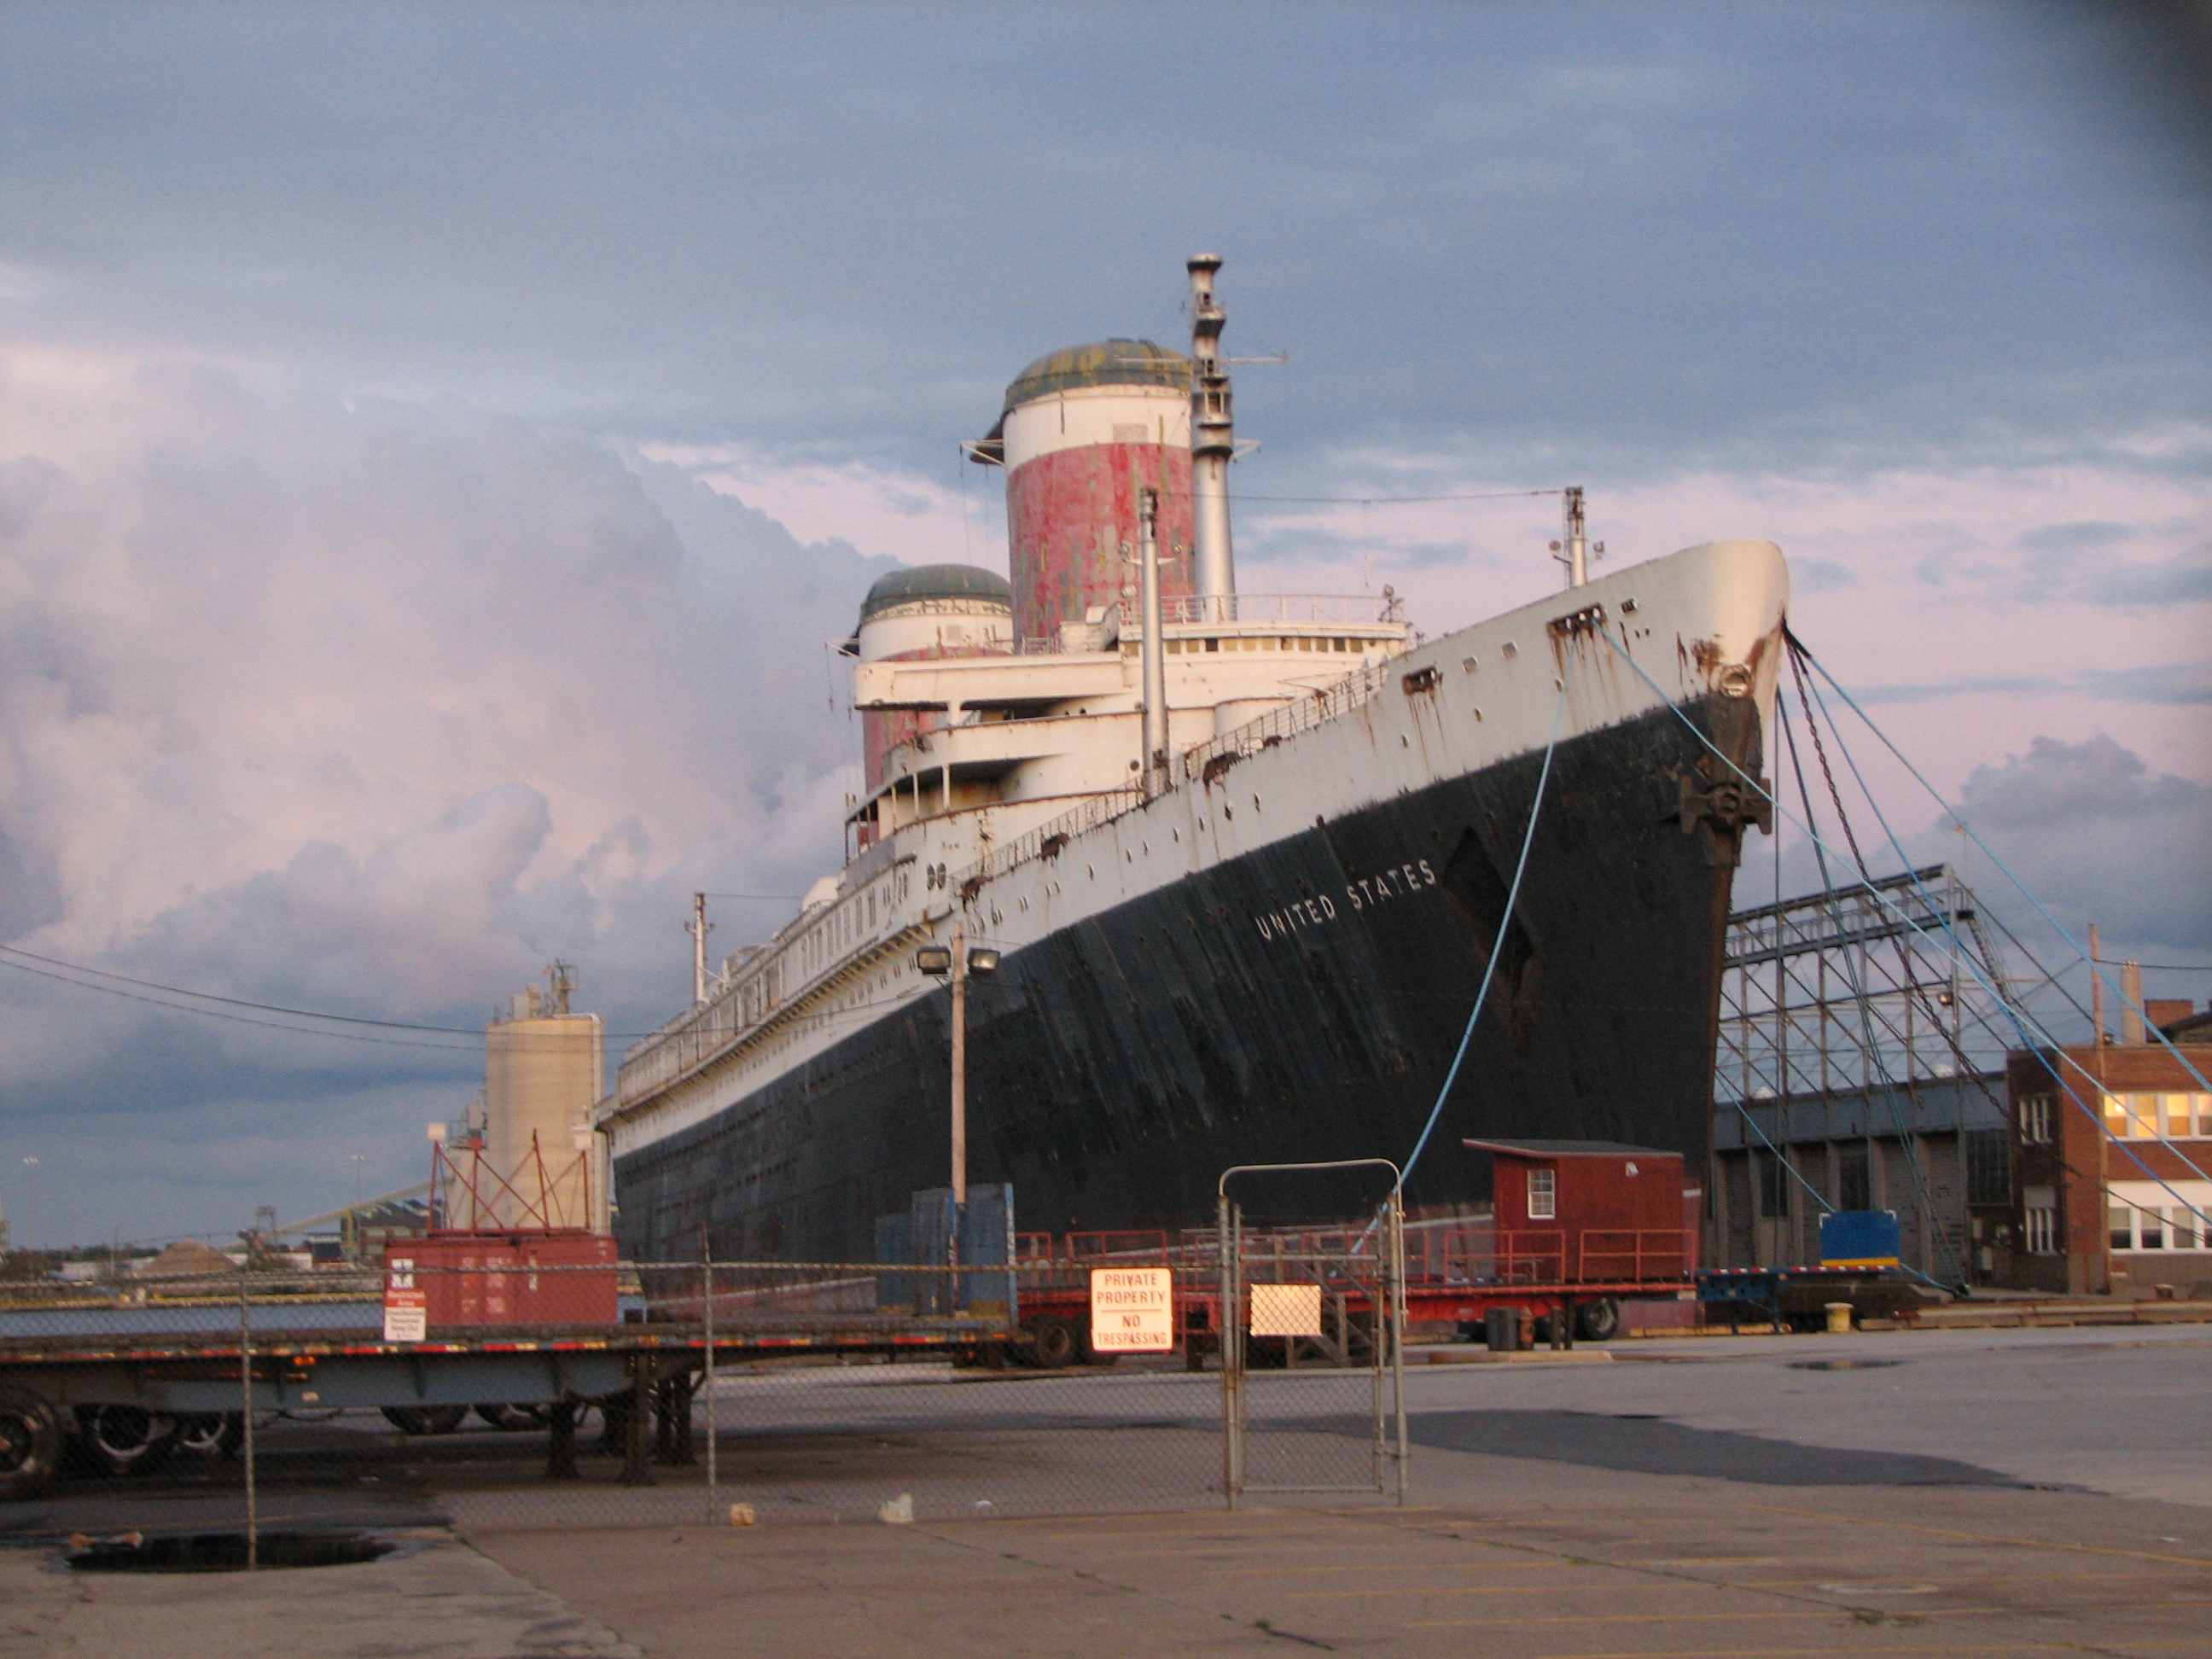 SS United States by Wikipedia contributor Lowlova